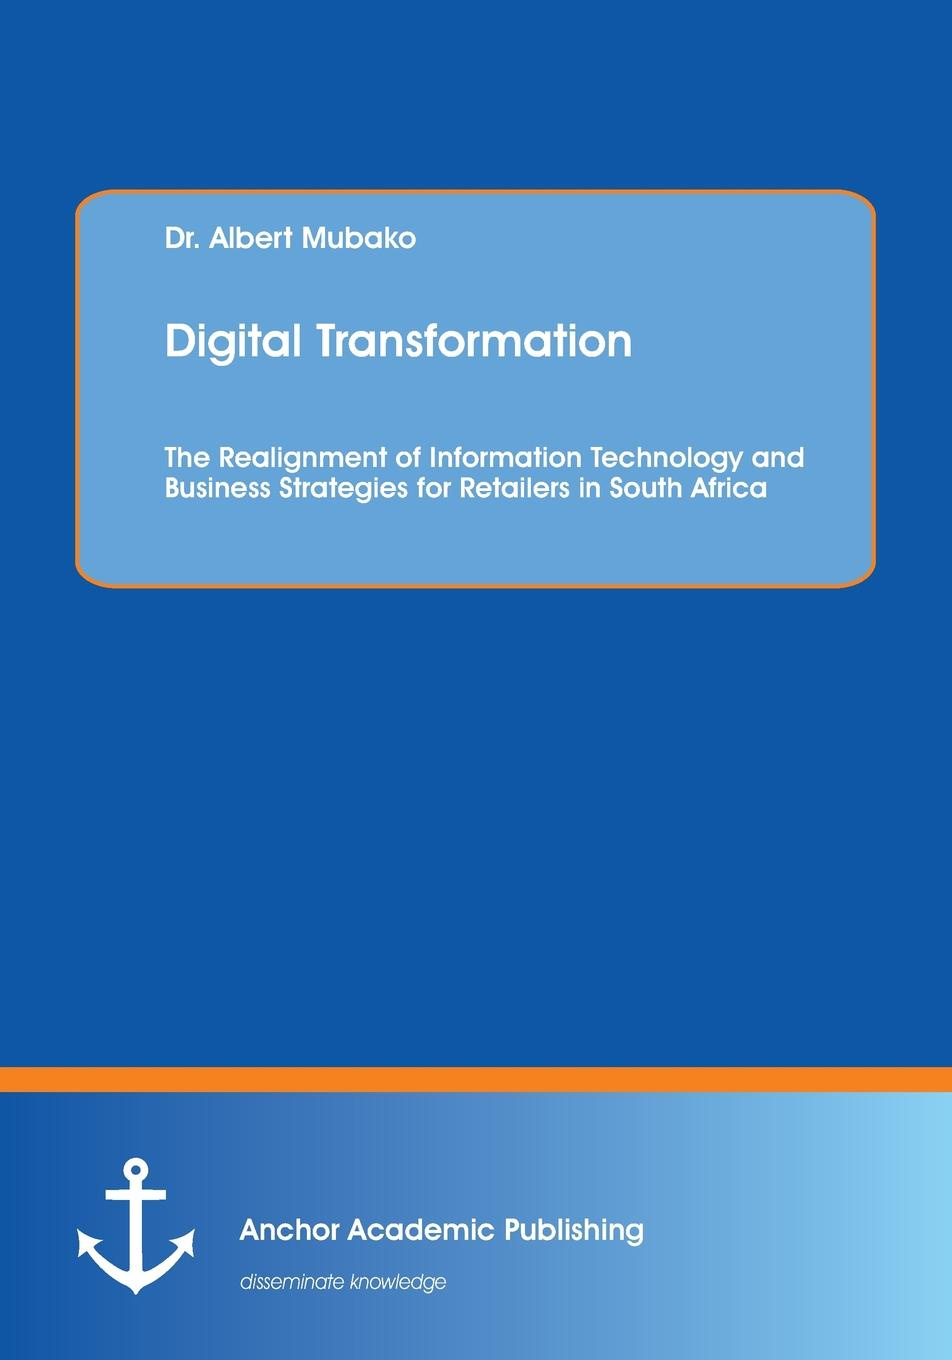 Albert Mubako Digital Transformation. The Realignment of Information Technology and Business Strategies for Retailers in South Africa produino digital 3 axis acceleration of gravity tilt module iic spi transmission for arduino